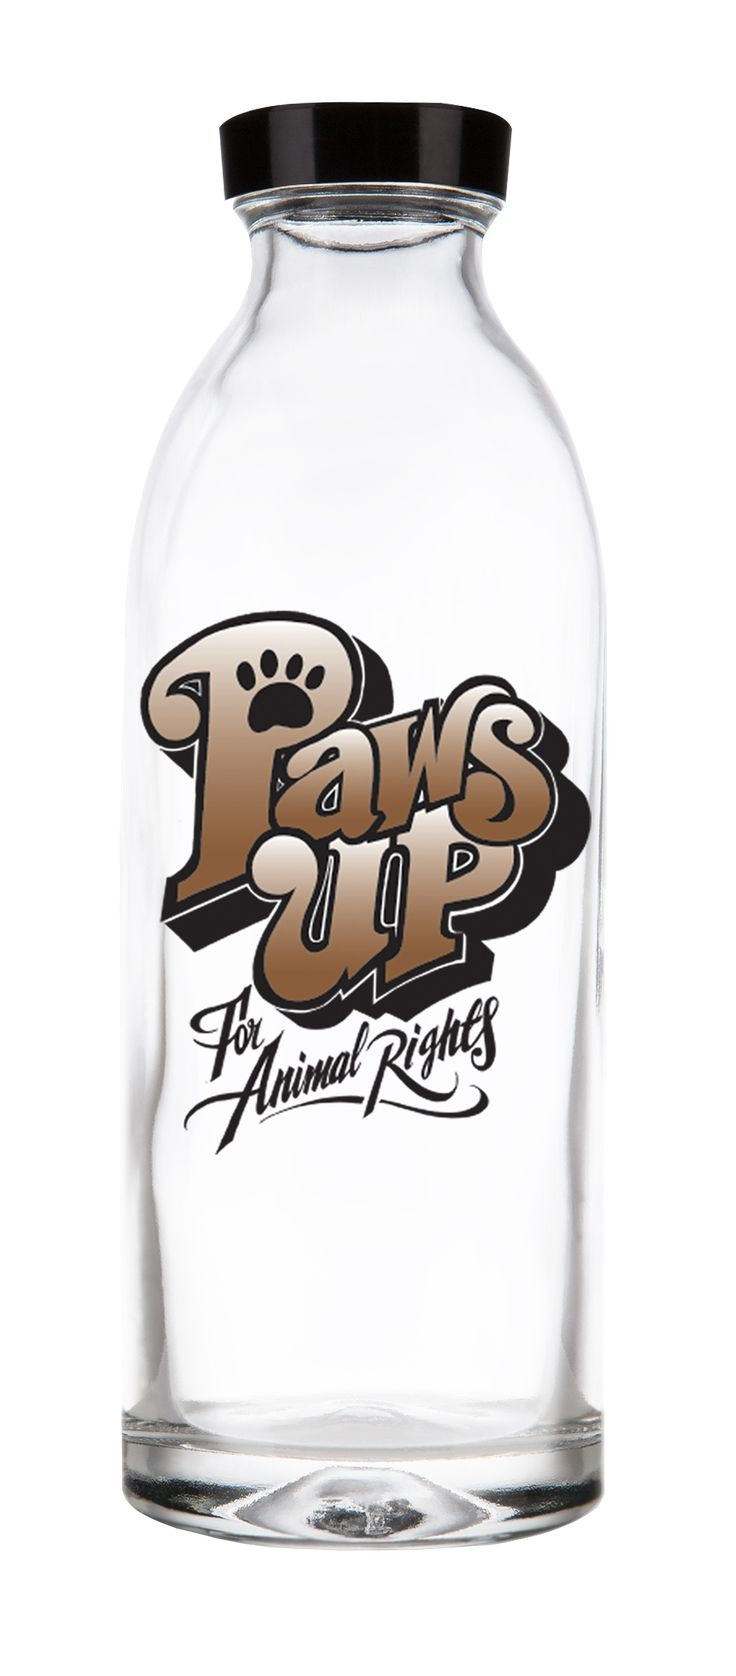 Our support for animal rights has been a hallmark of our mission from day one.  We stand for the rights of all animals, small, large, any size, shape or type.  So whether you're a vegan, vegetarian or someone who just likes to enjoy the companionship of your favorite pet, let's all raise our Paws UP!